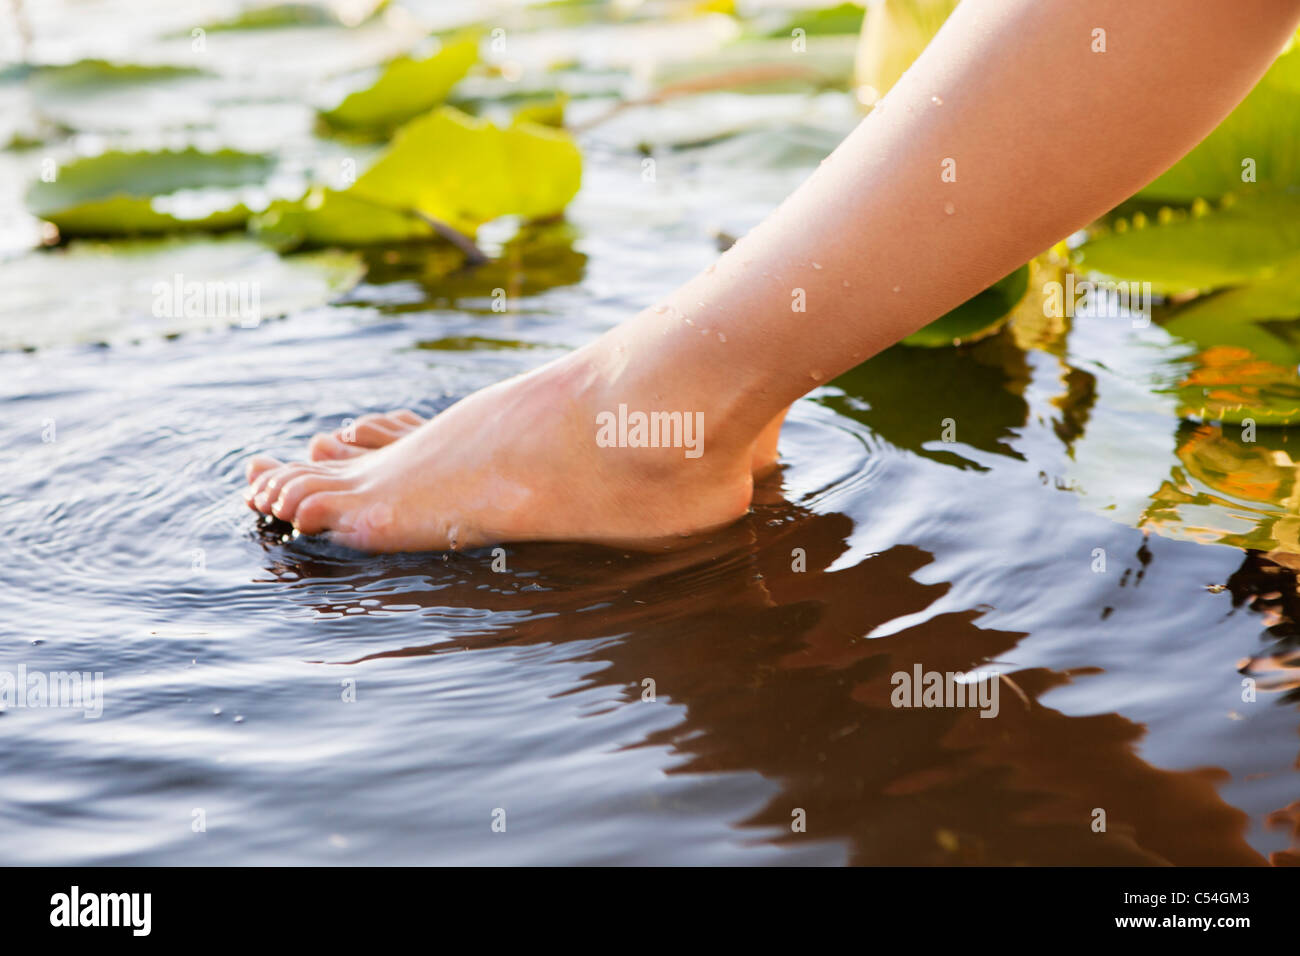 Close-up of a woman's leg in pond - Stock Image